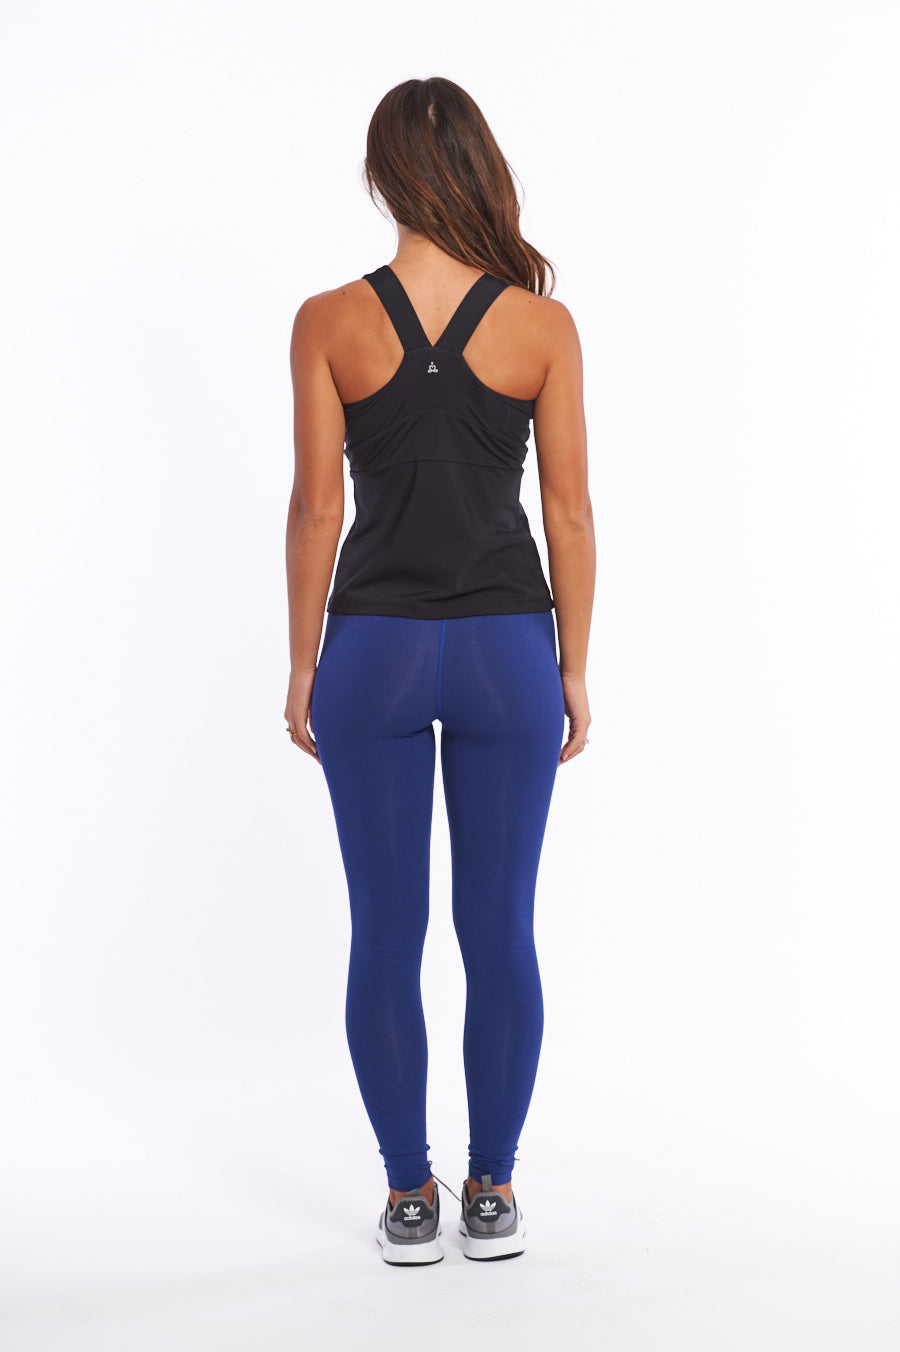 Activewear top quick drying